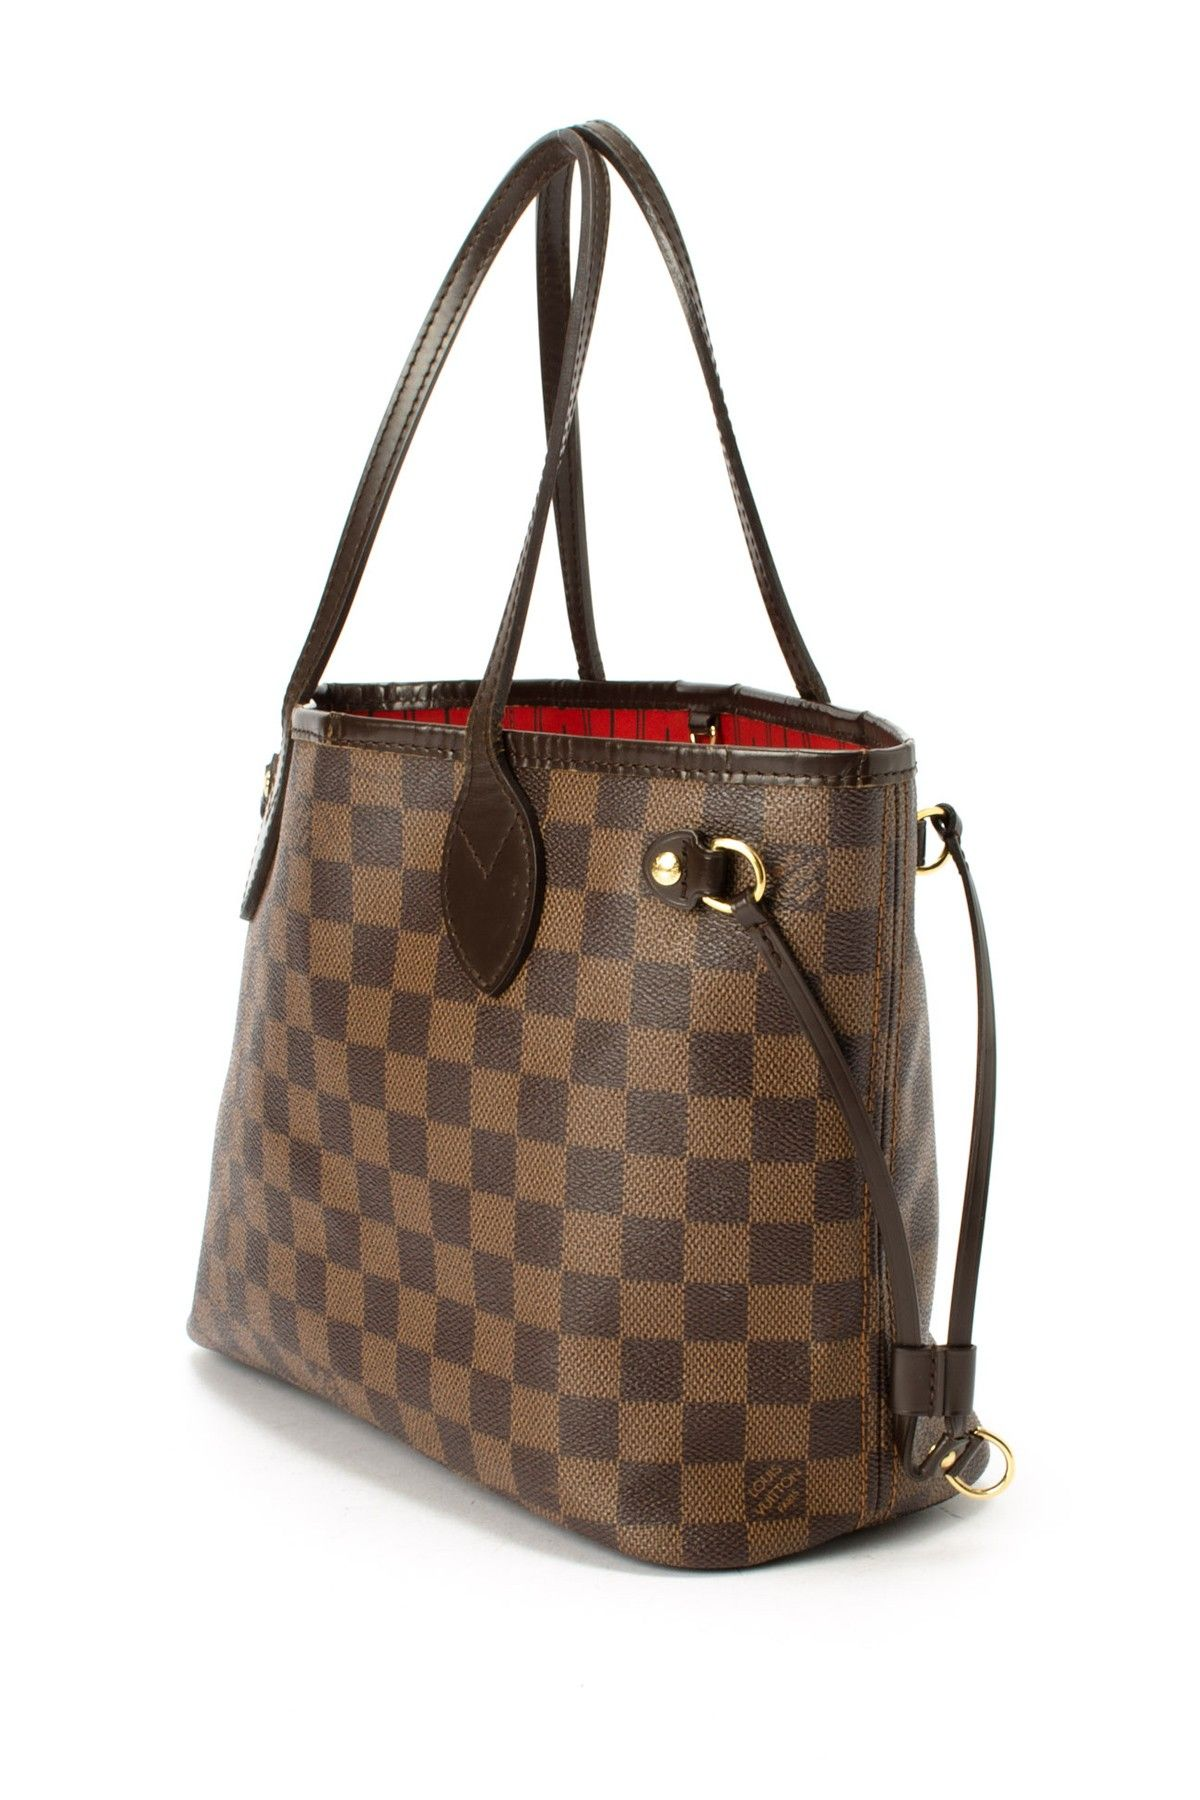 Vintage Louis Vuitton Leather Neverfull PM Tote on HauteLook